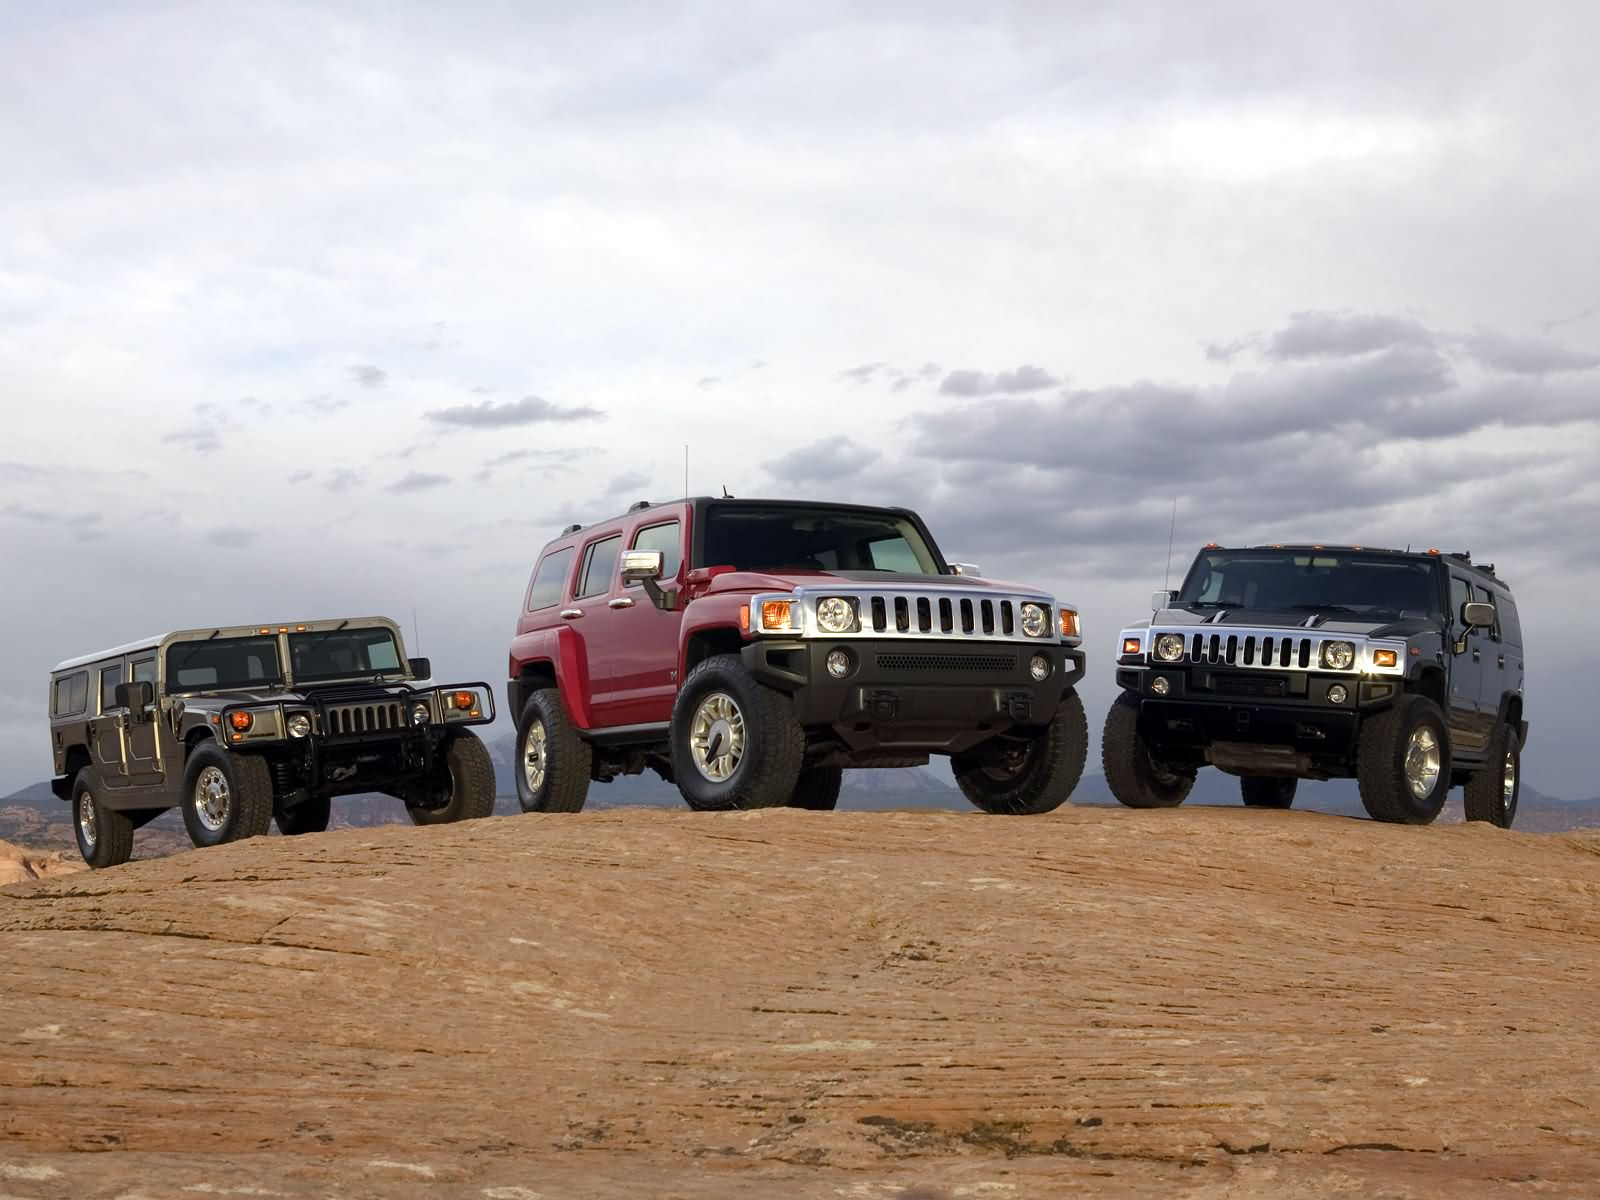 Hummer H3 photos Gallery with 15 pics CarsBase